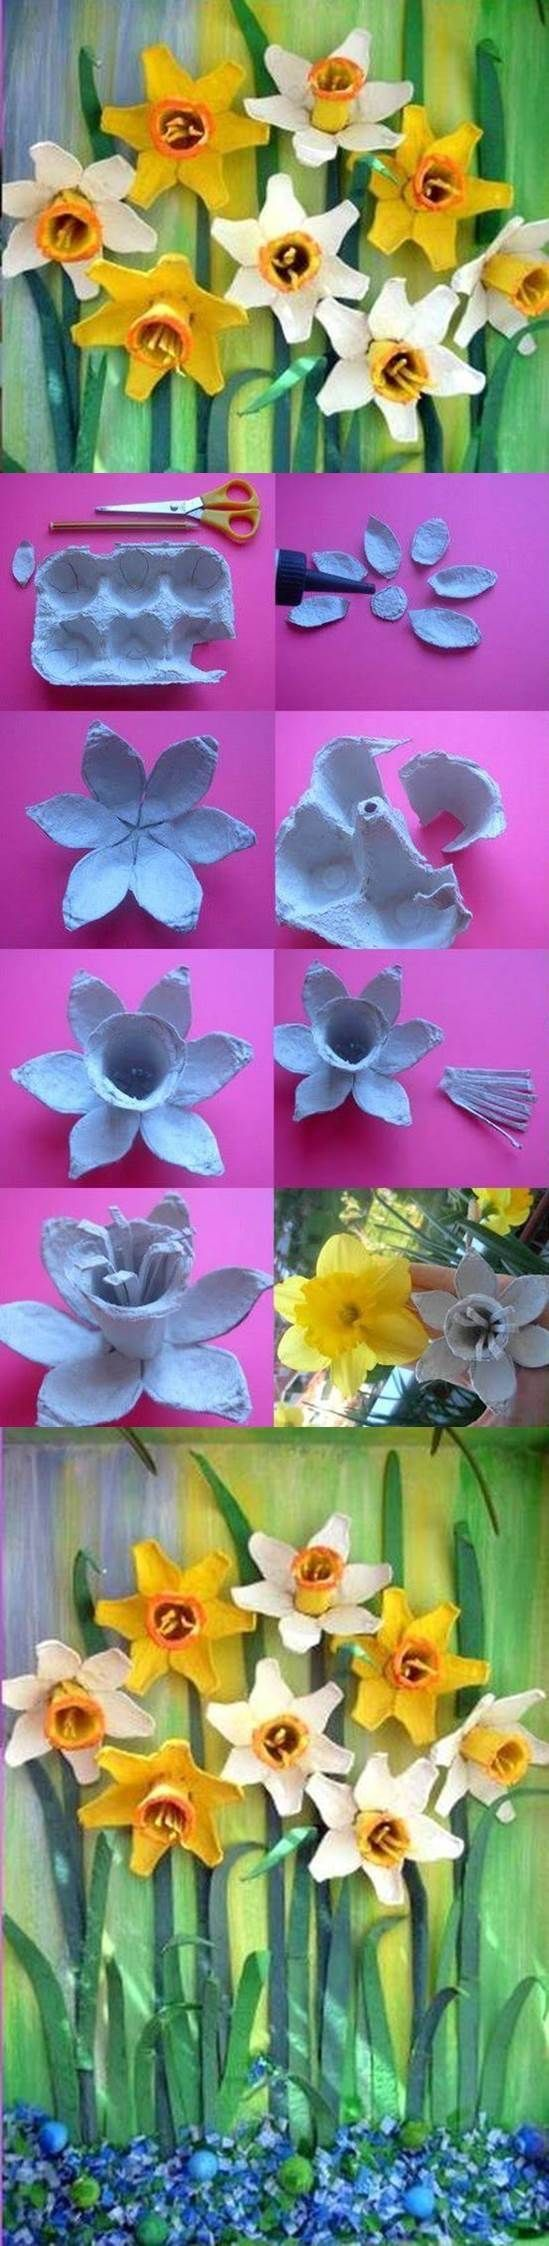 Some more flower - egg carton box fower...cause why not